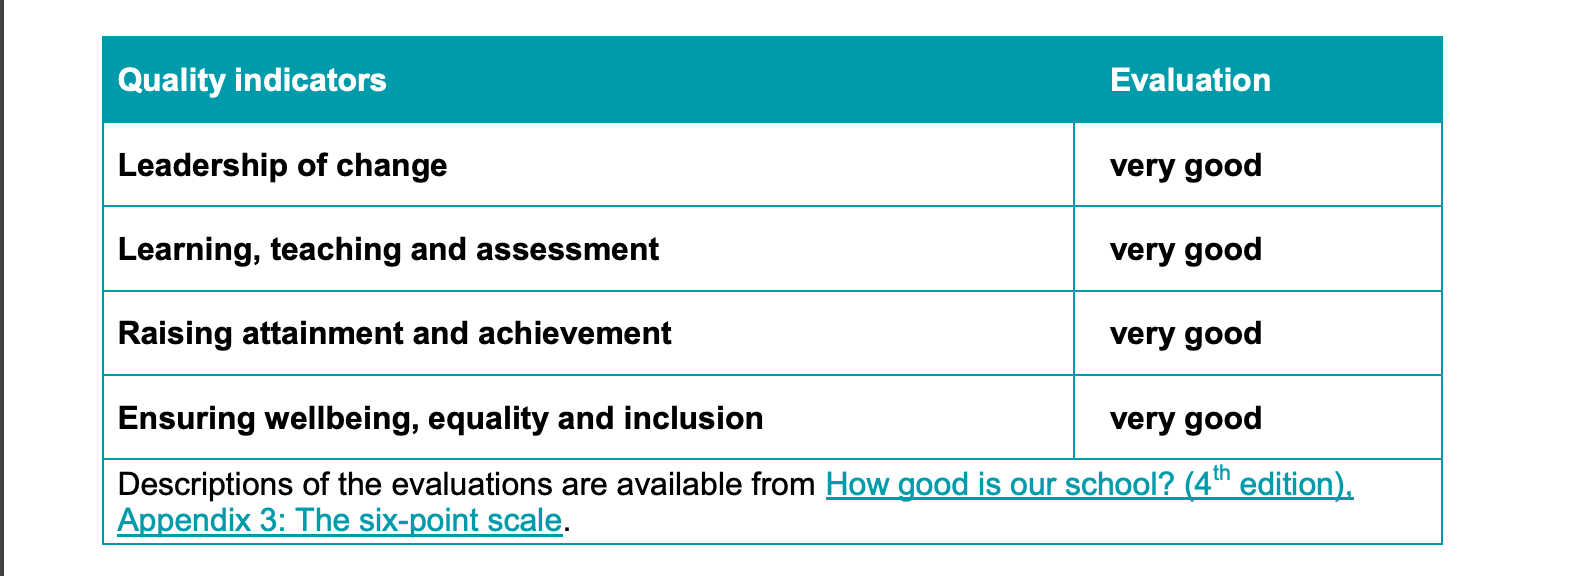 Rossie quality indicators table